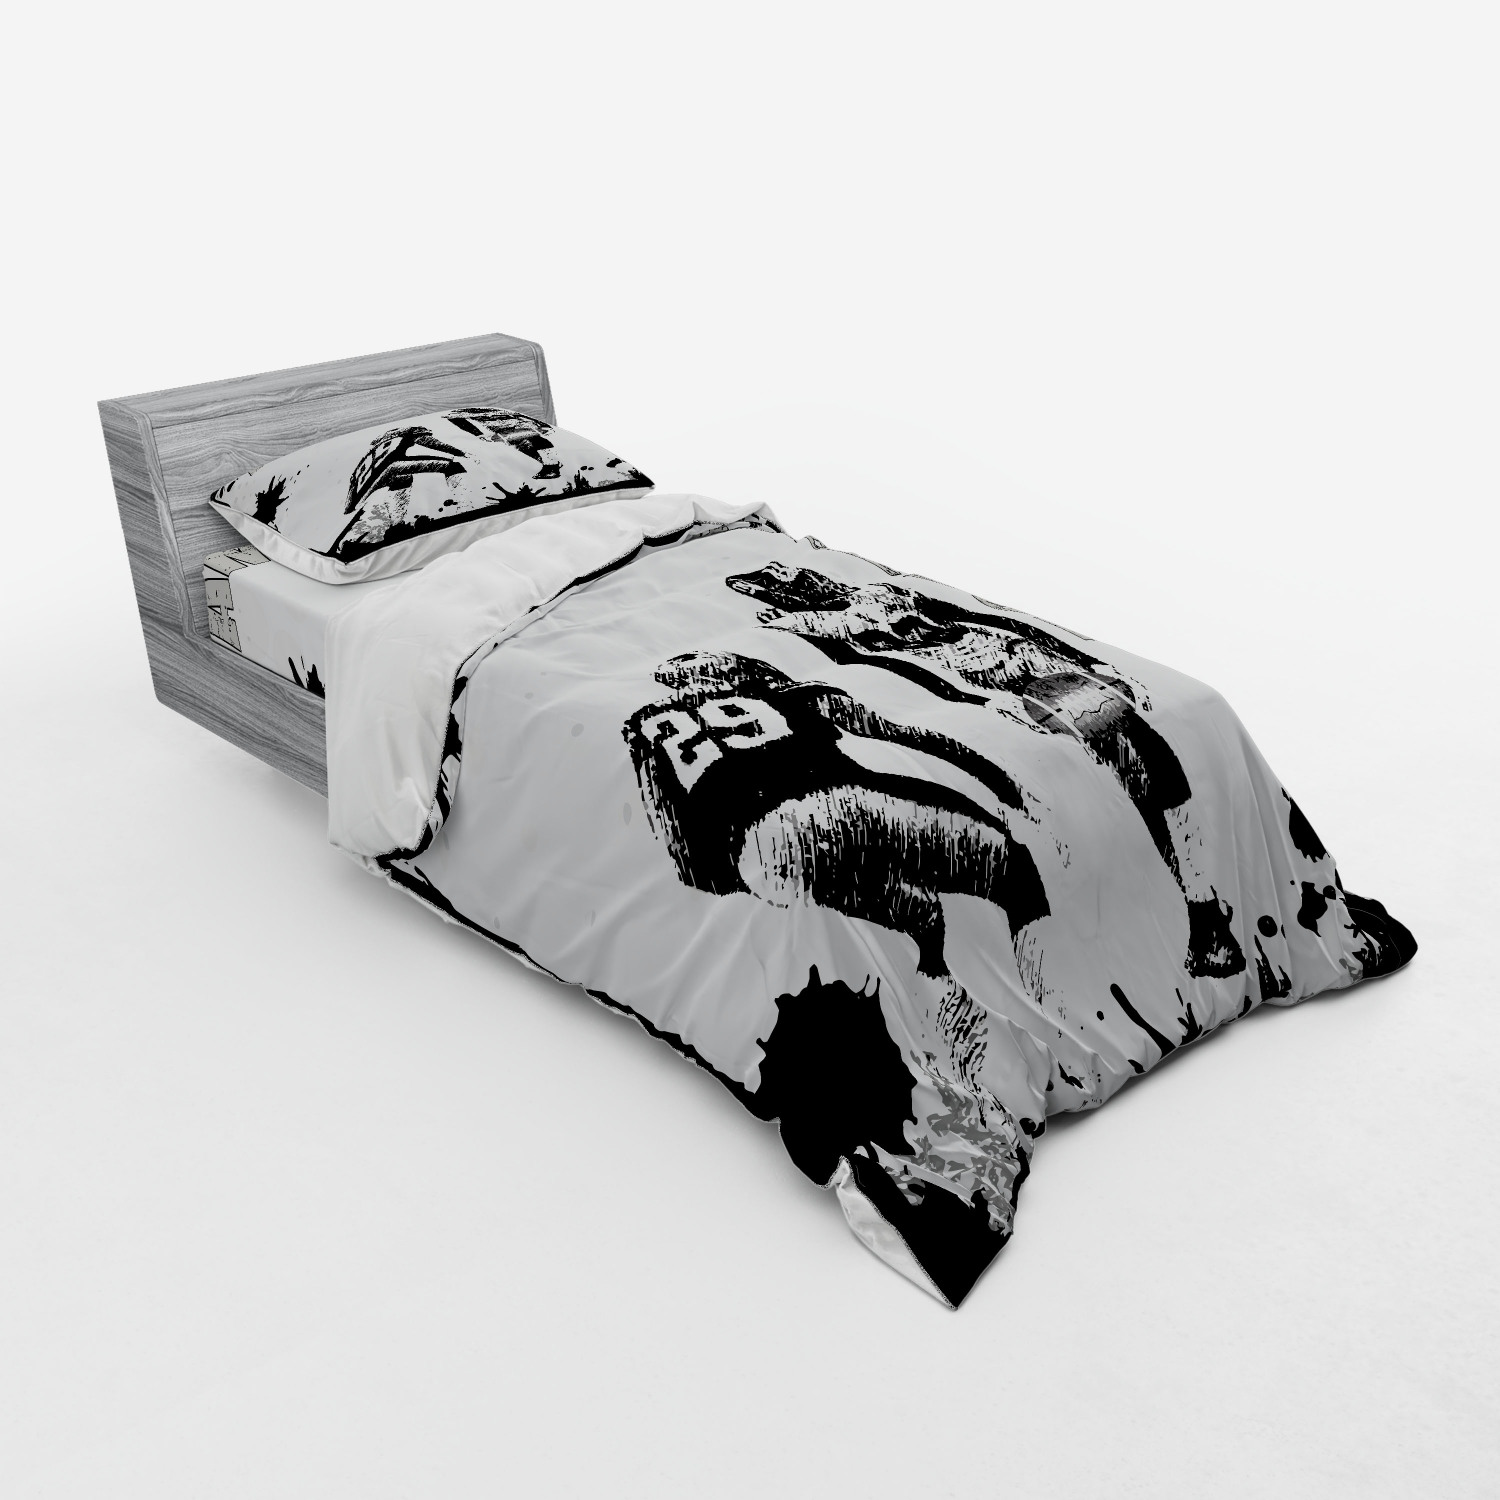 thumbnail 9 - Ambesonne Black White Art Bedding Set Duvet Cover Sham Fitted Sheet in 3 Sizes